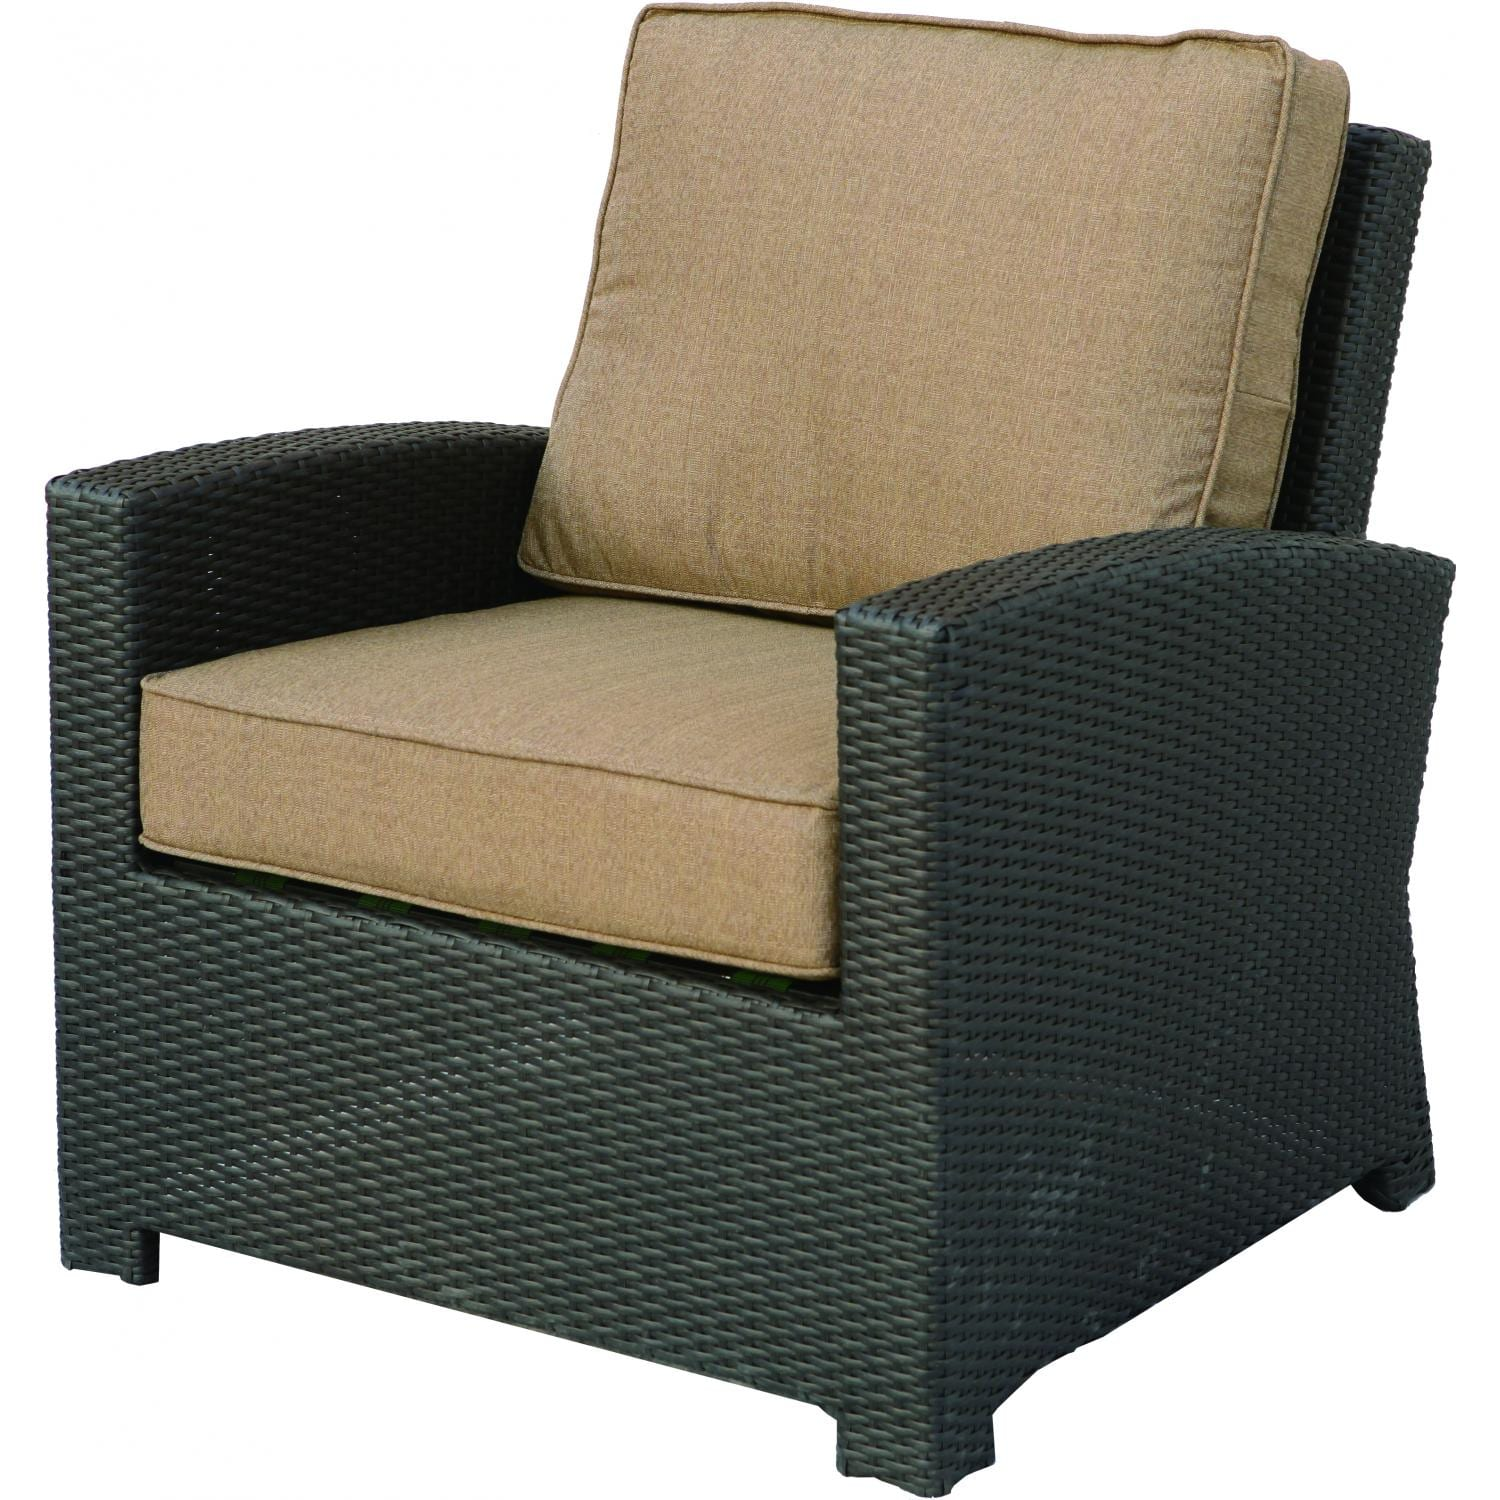 Darlee Vienna Resin Wicker Patio Club Chair The Outdoor